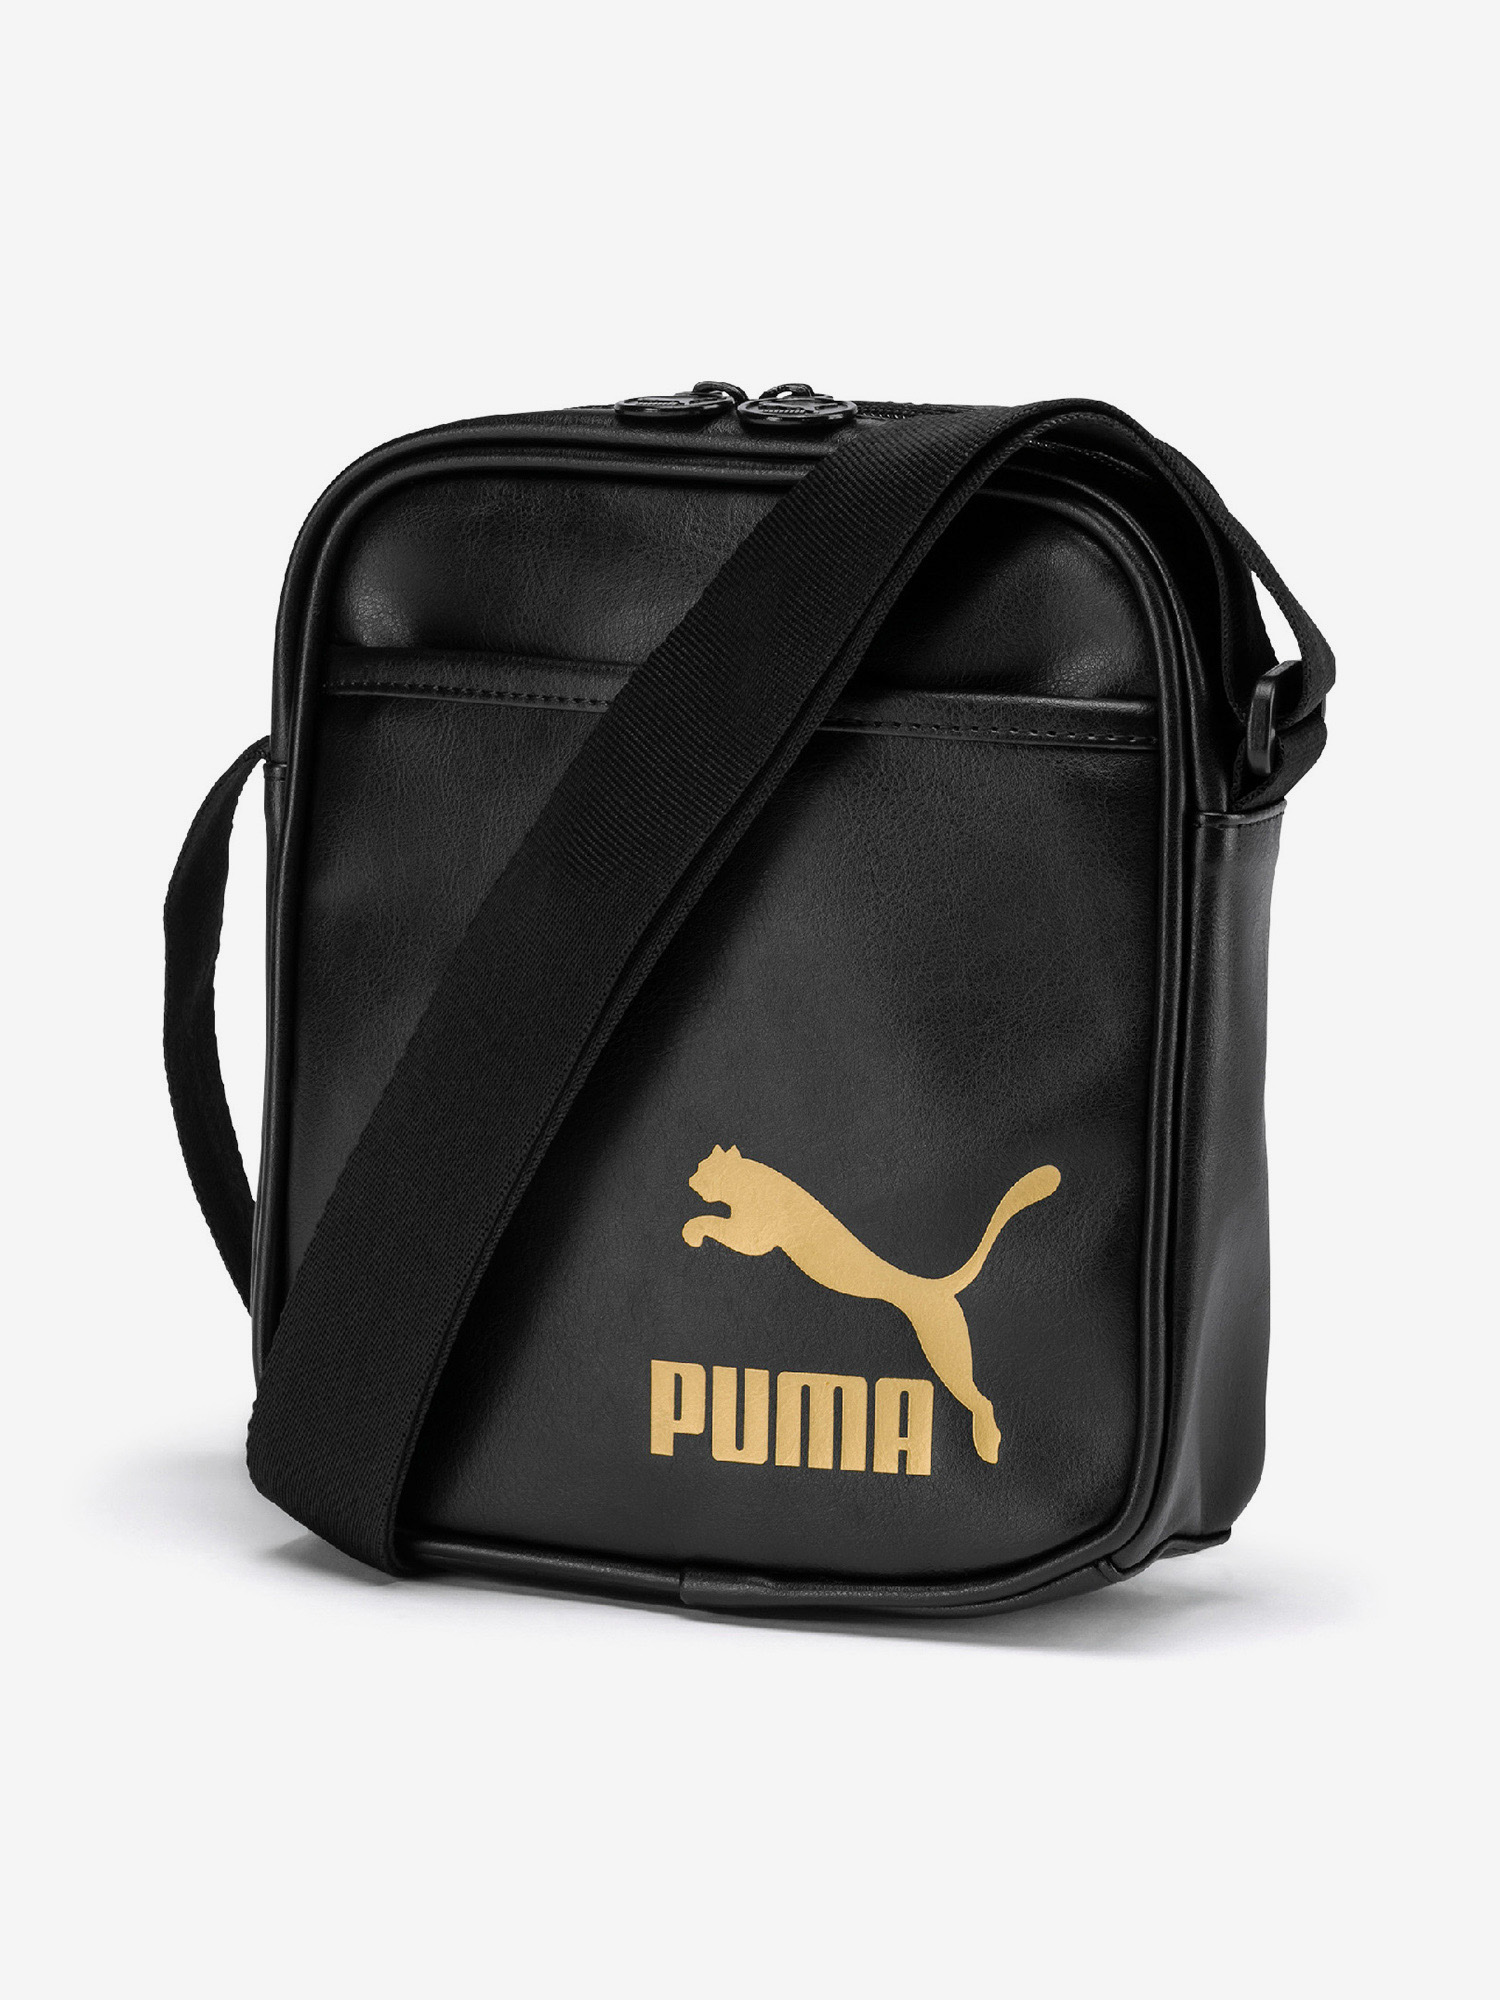 Taška Puma Originals Portable Retro (1)